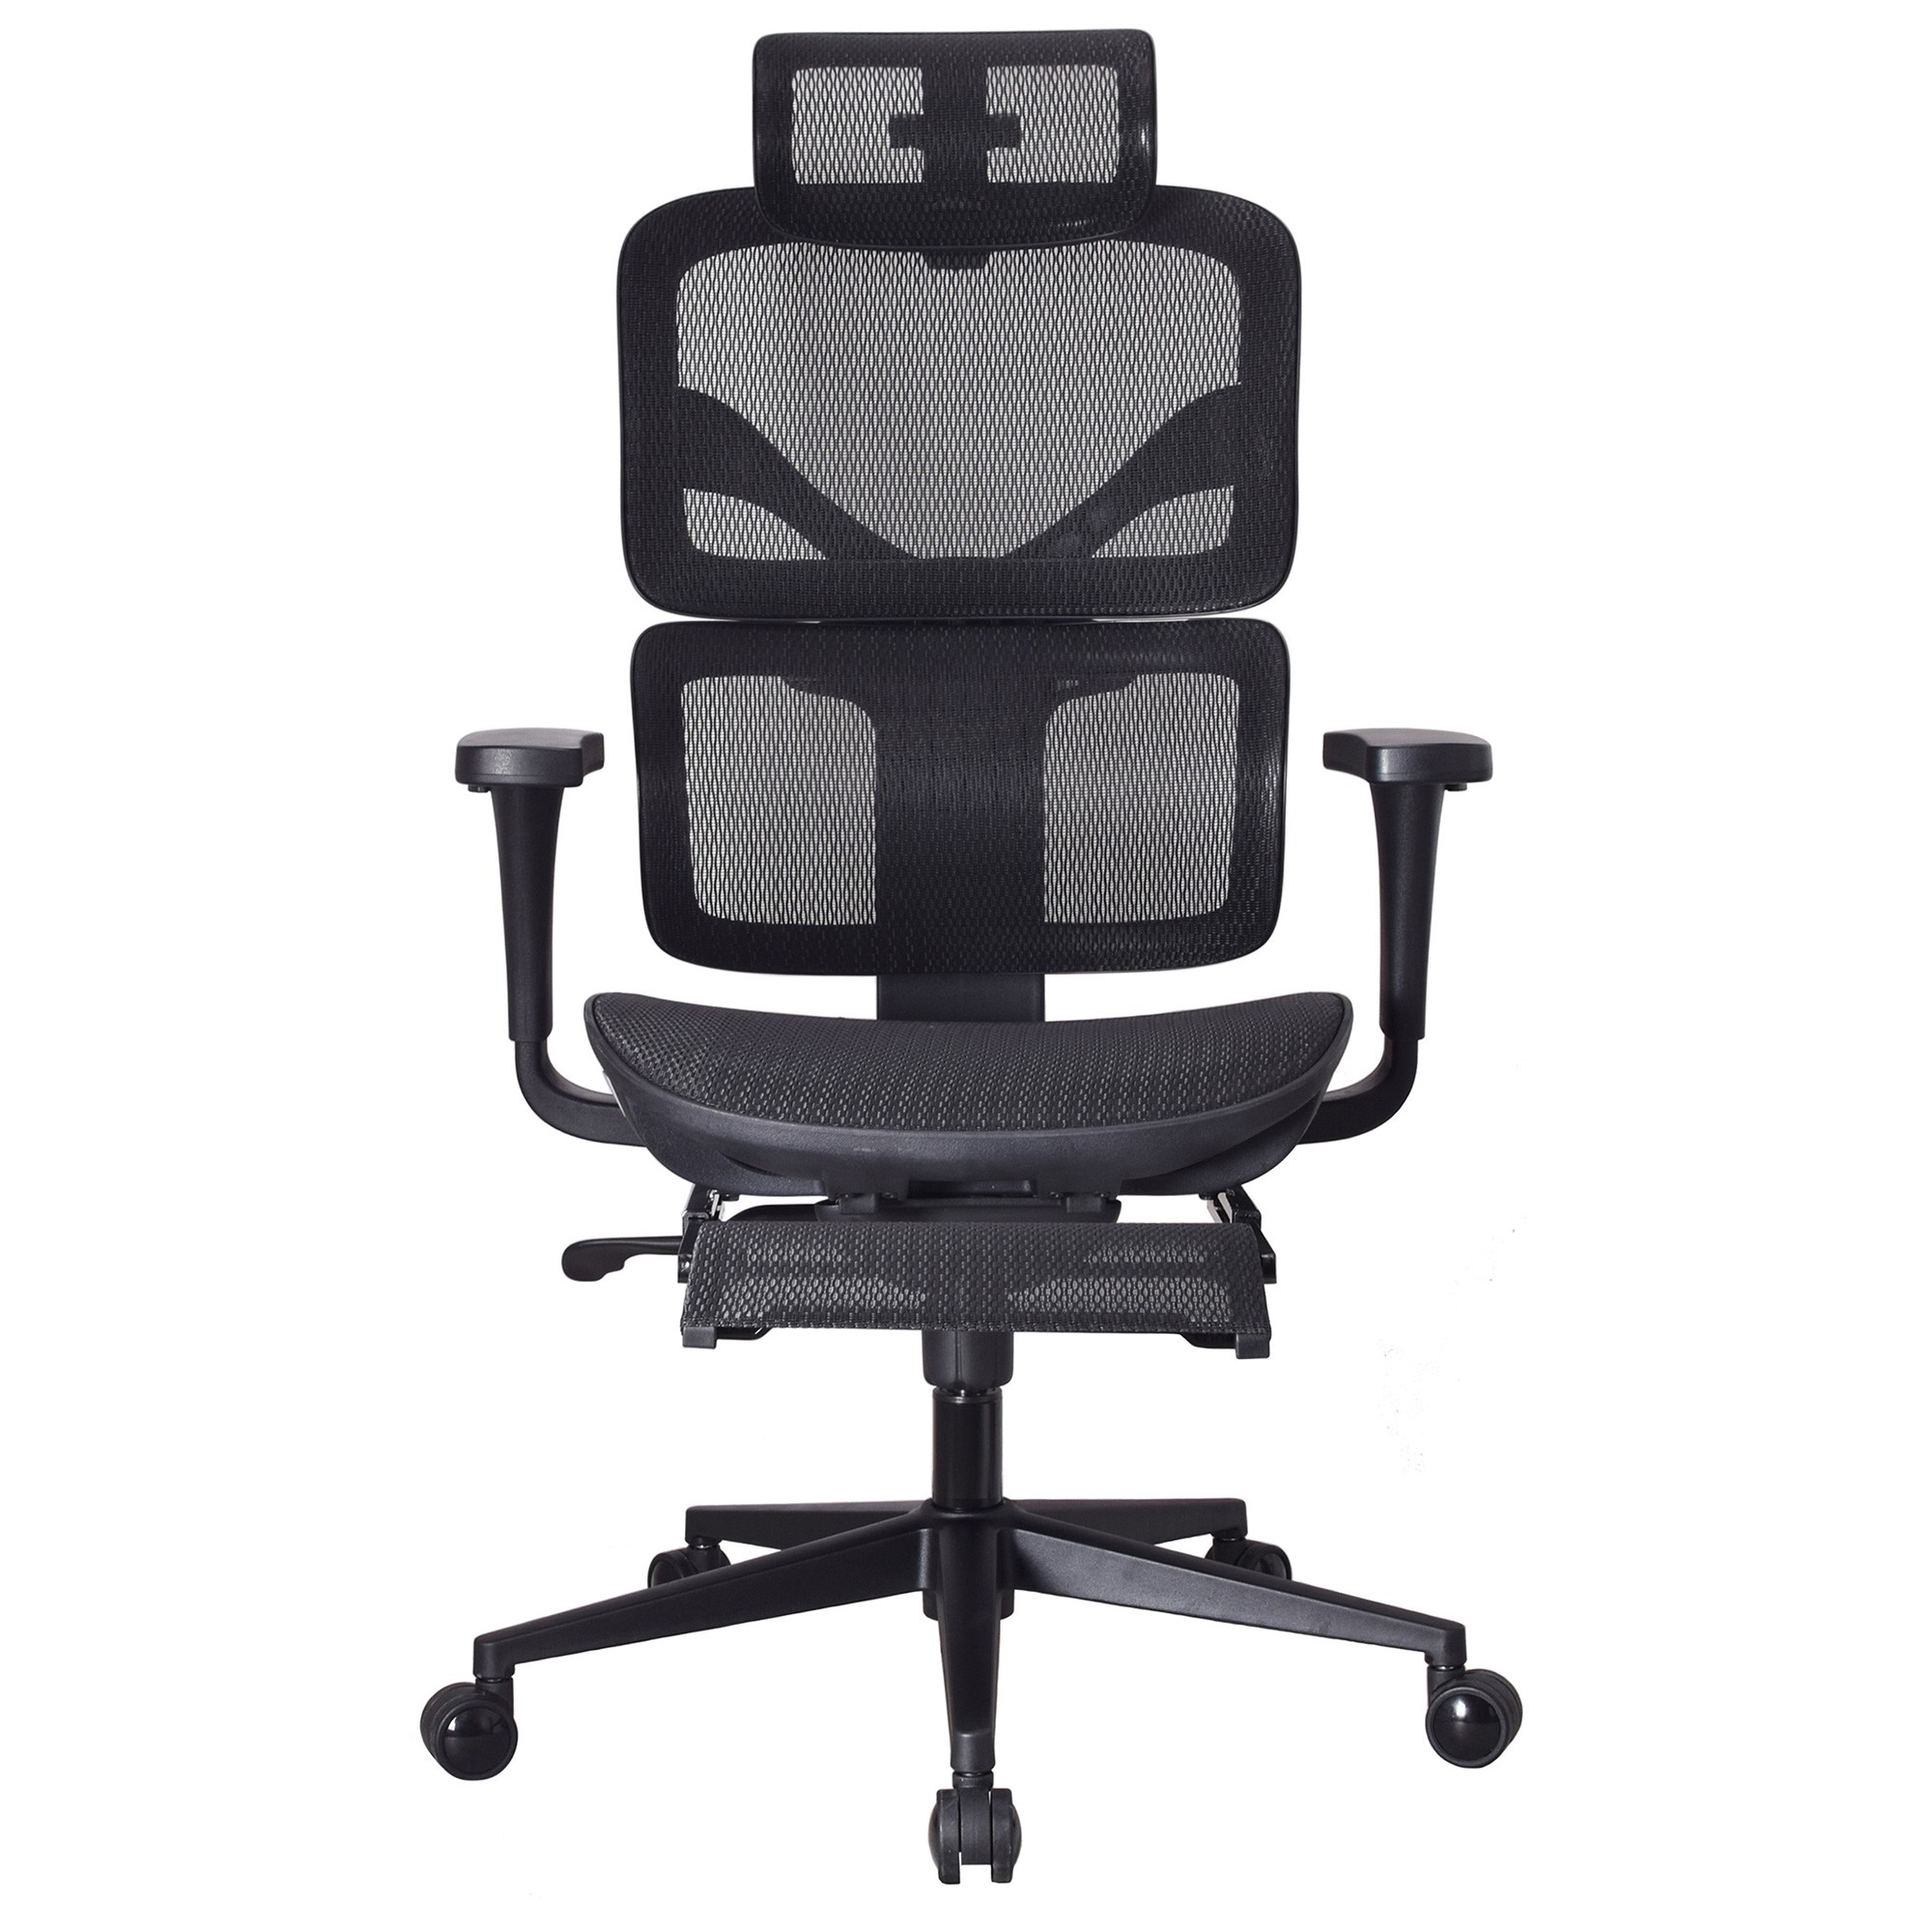 Killerby Mesh Fabric Ergonomic Executive Office Chair with Telescopic Footrest